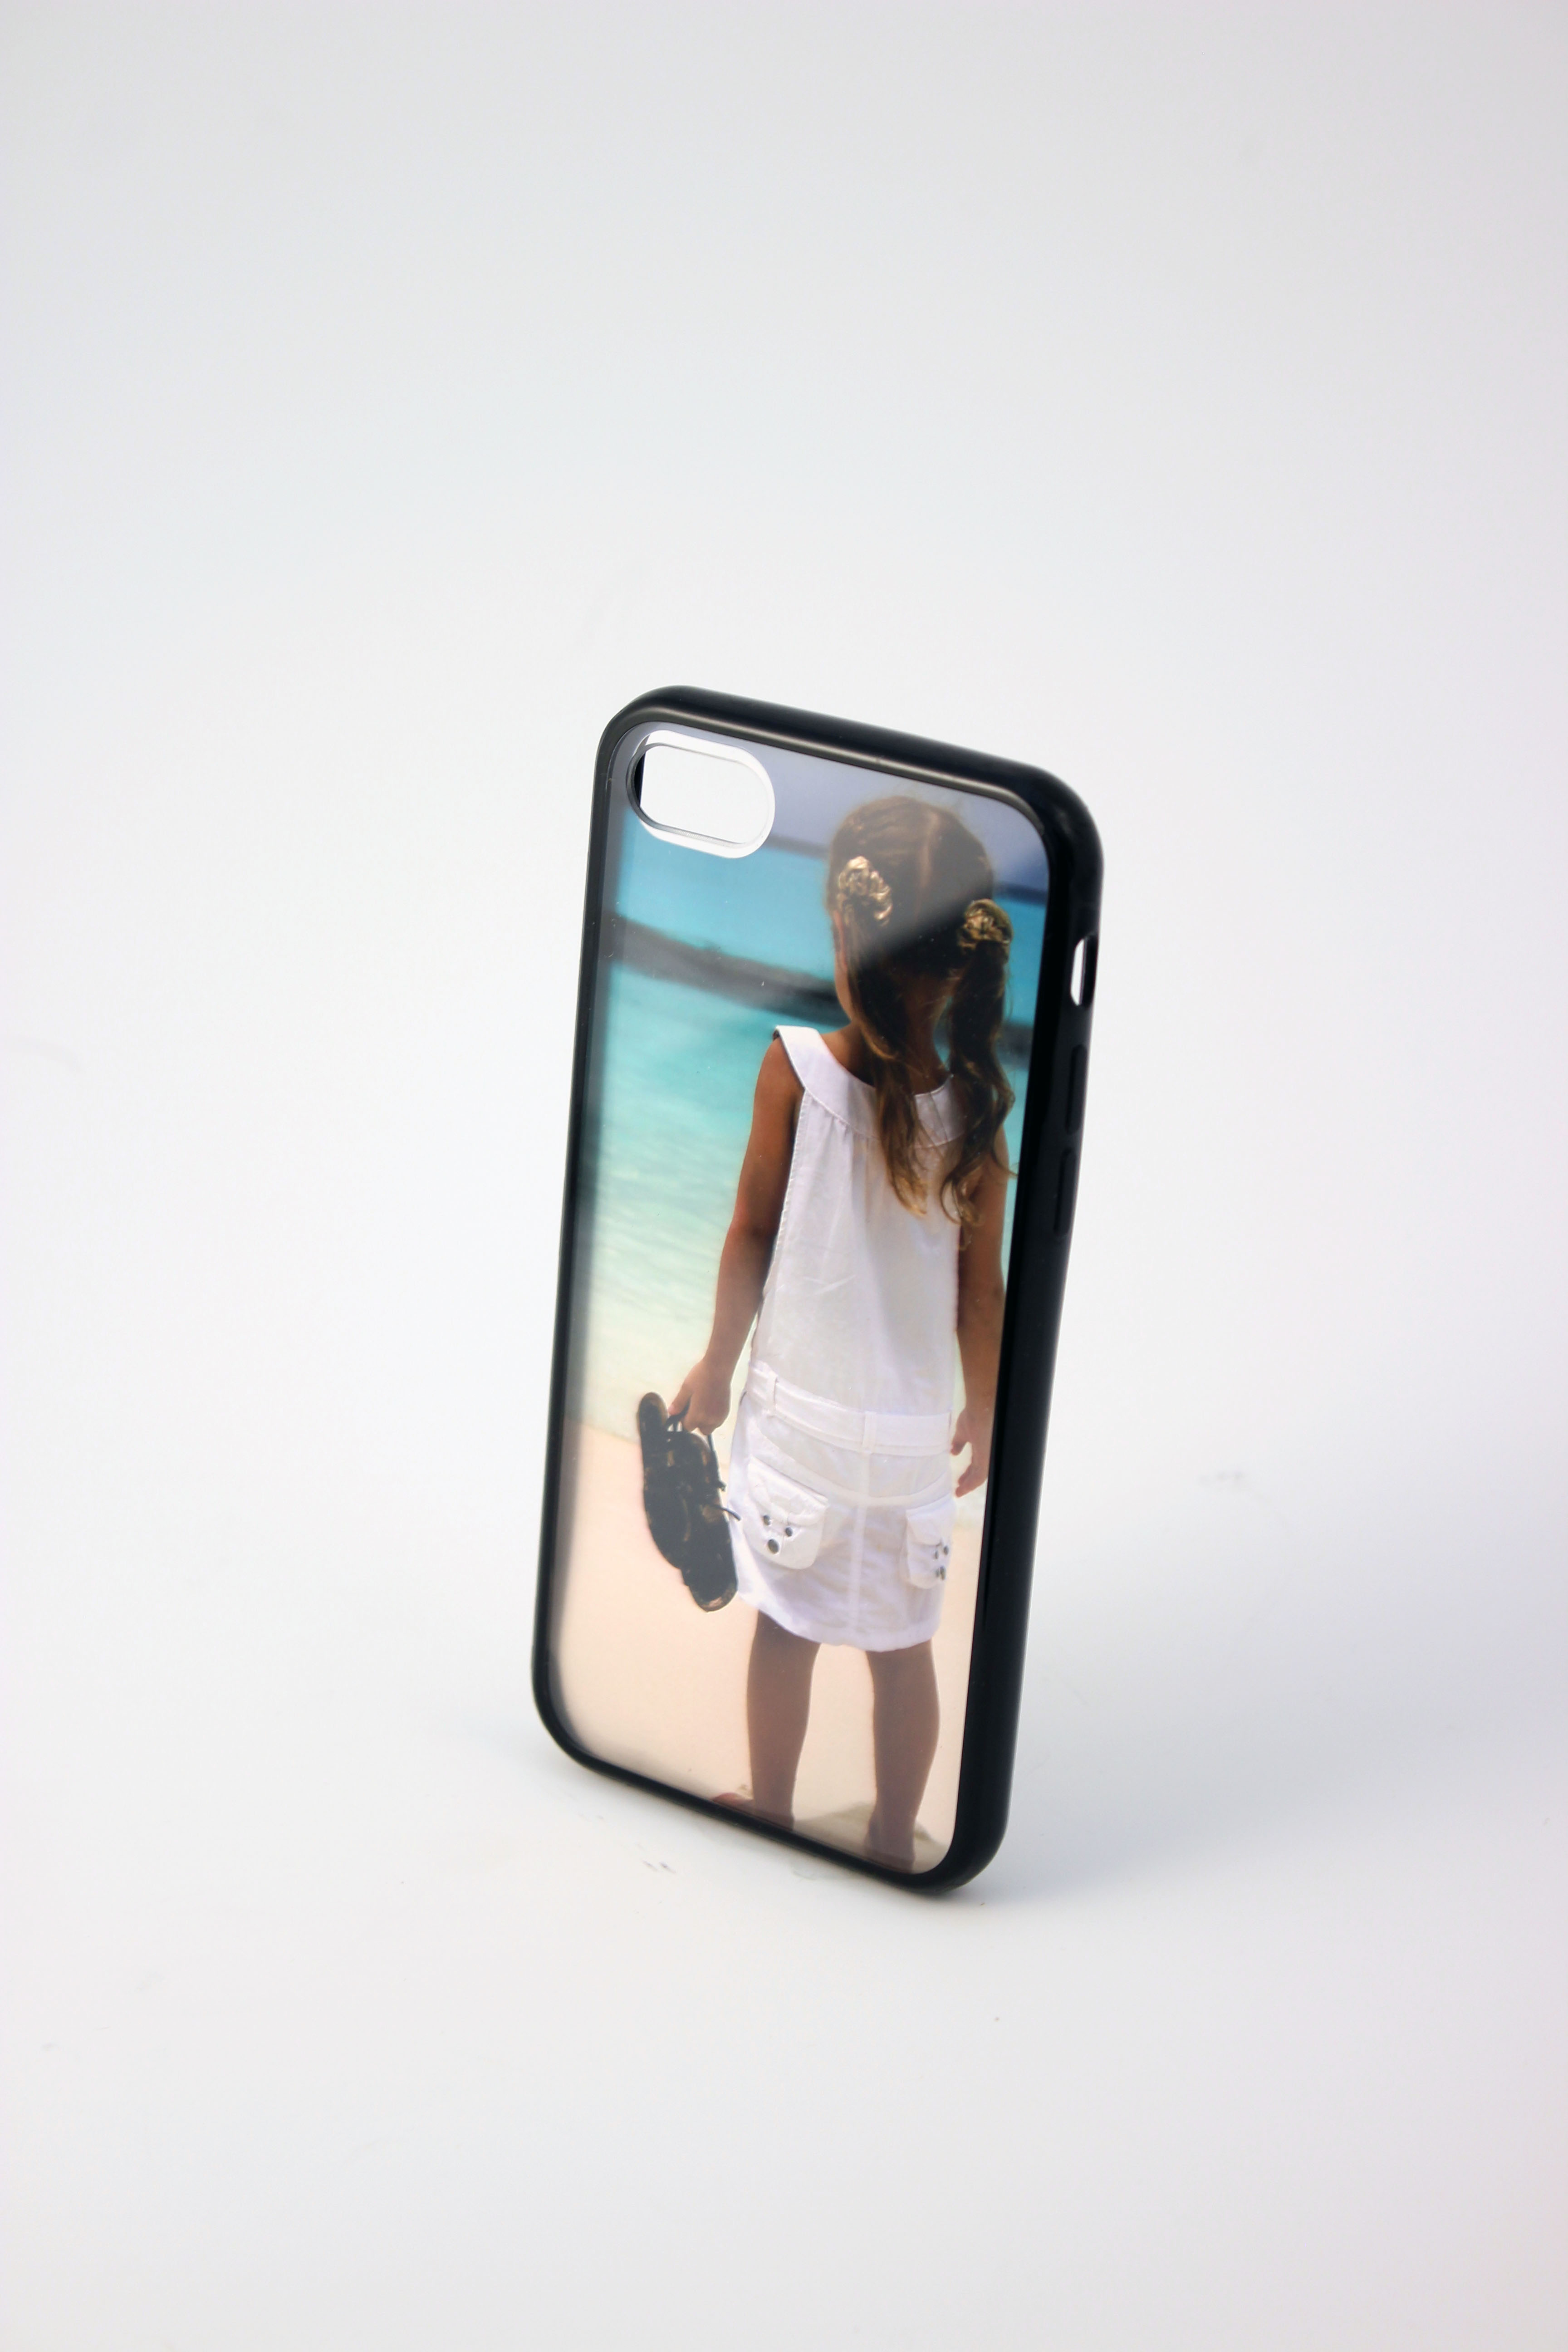 Smartphone Cases Smartphone Cases Easygifts Pbi Photo